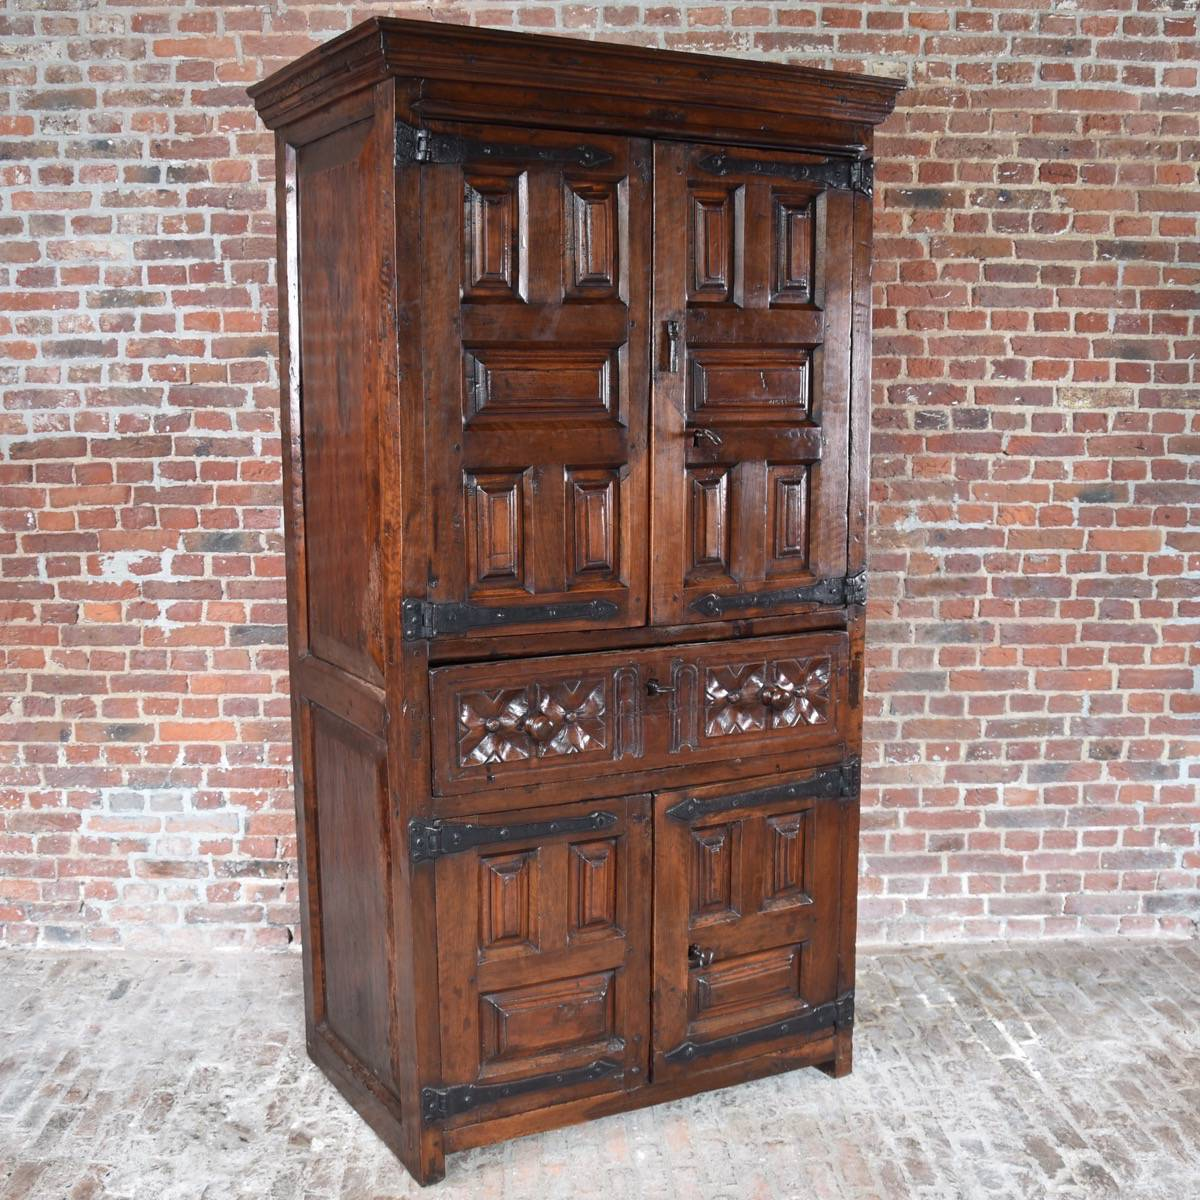 Antique European Kitchen Cabinets South European Walnut 4 Door Cabinet